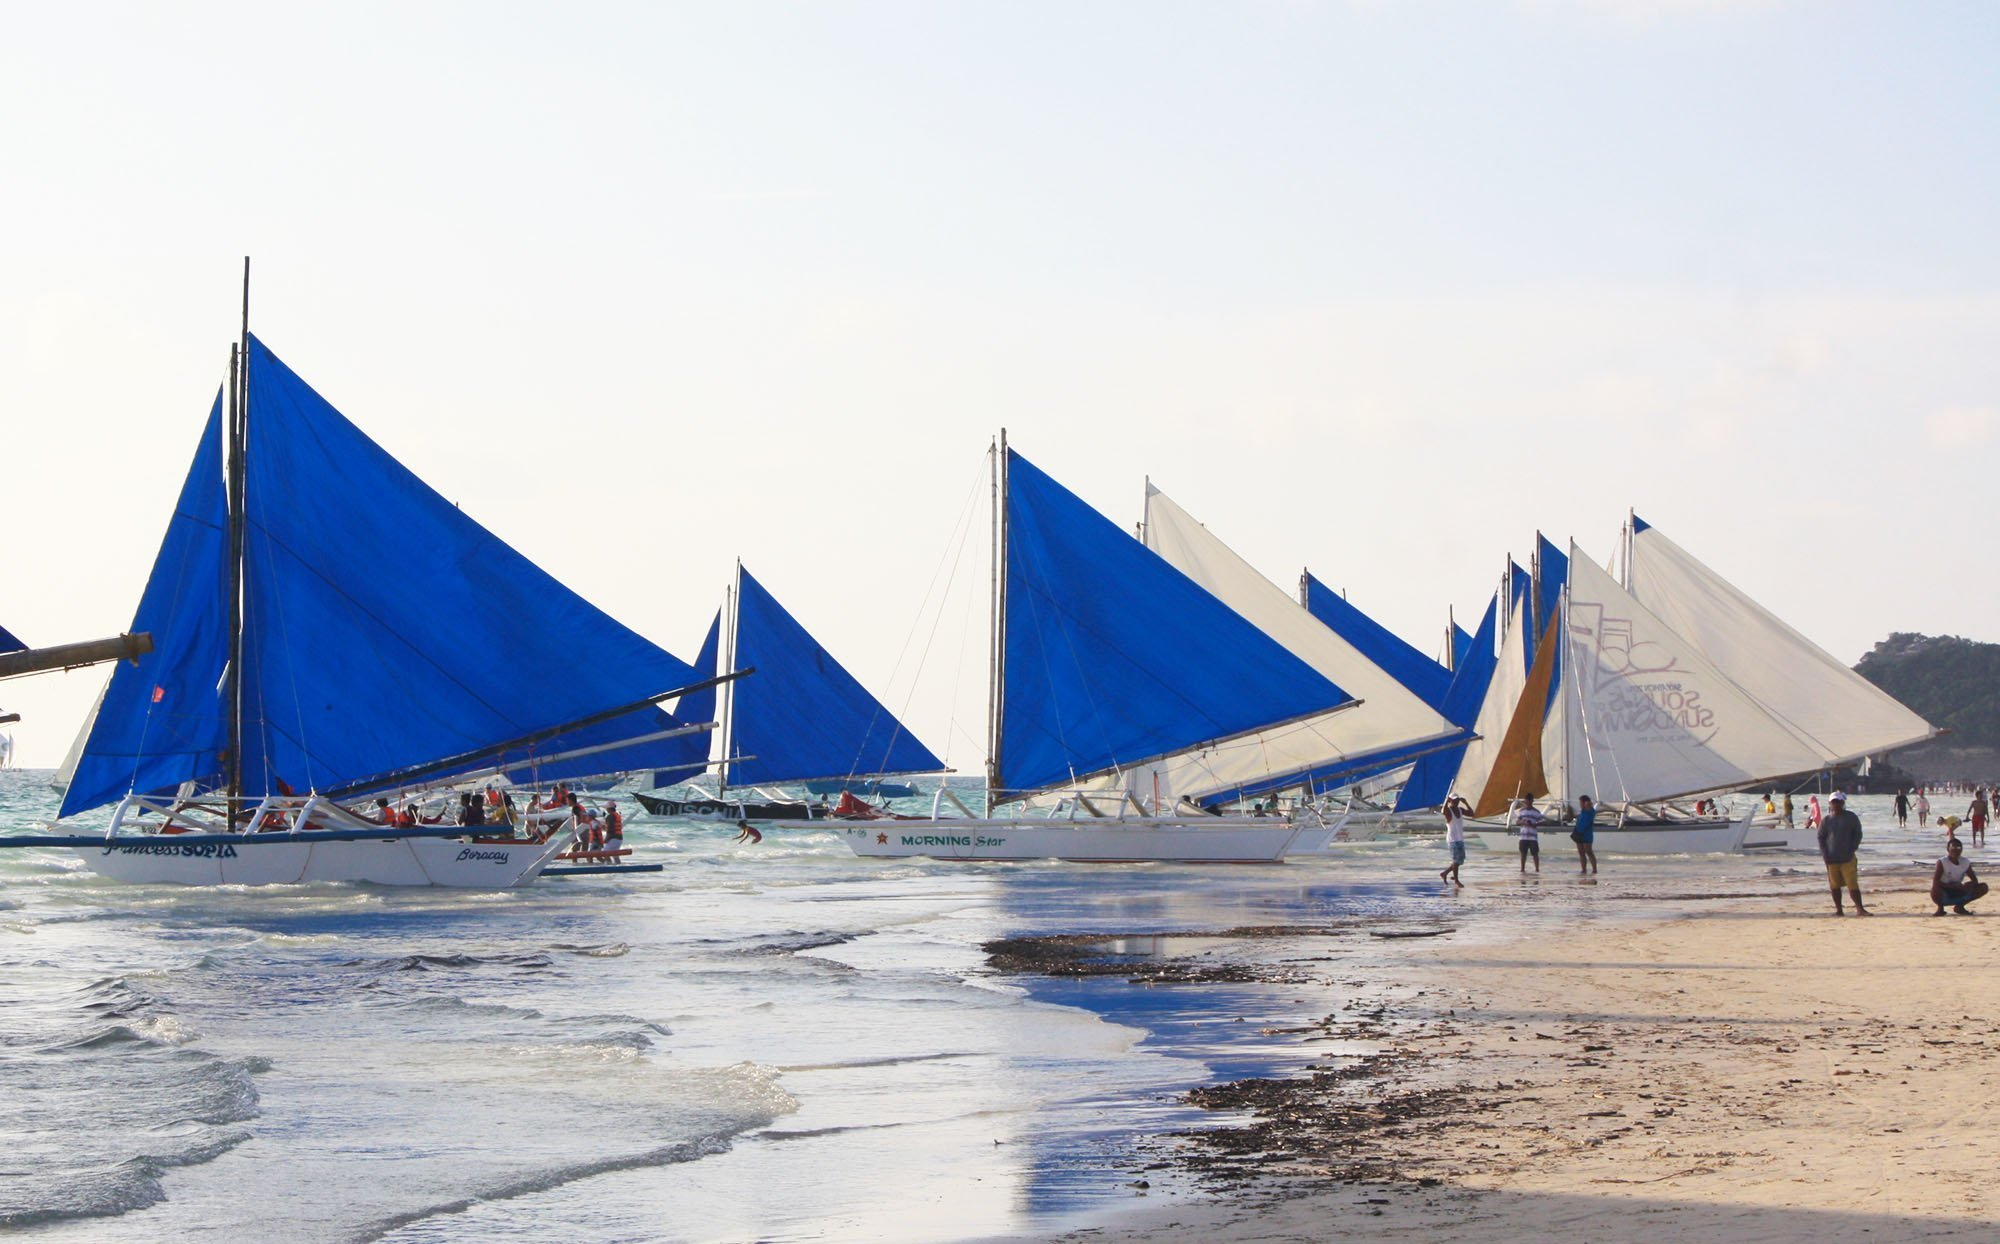 Iloilo Paraw Regatta Festival 2019: Schedule of Events